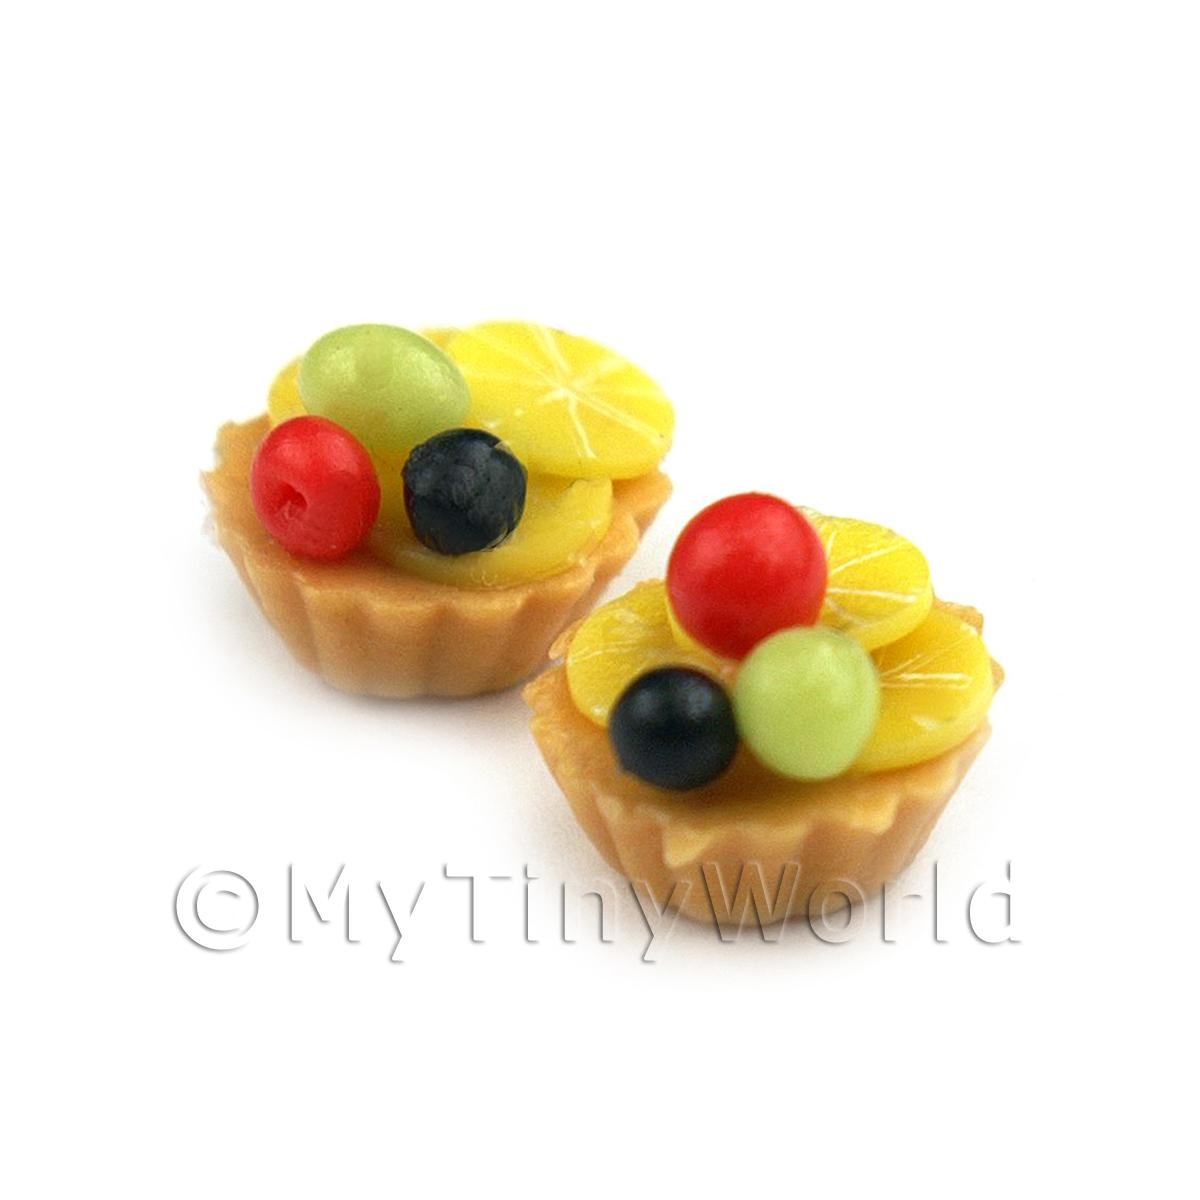 Dolls House Miniature Loose Handmade Cherry and Lemon Suprise Tart